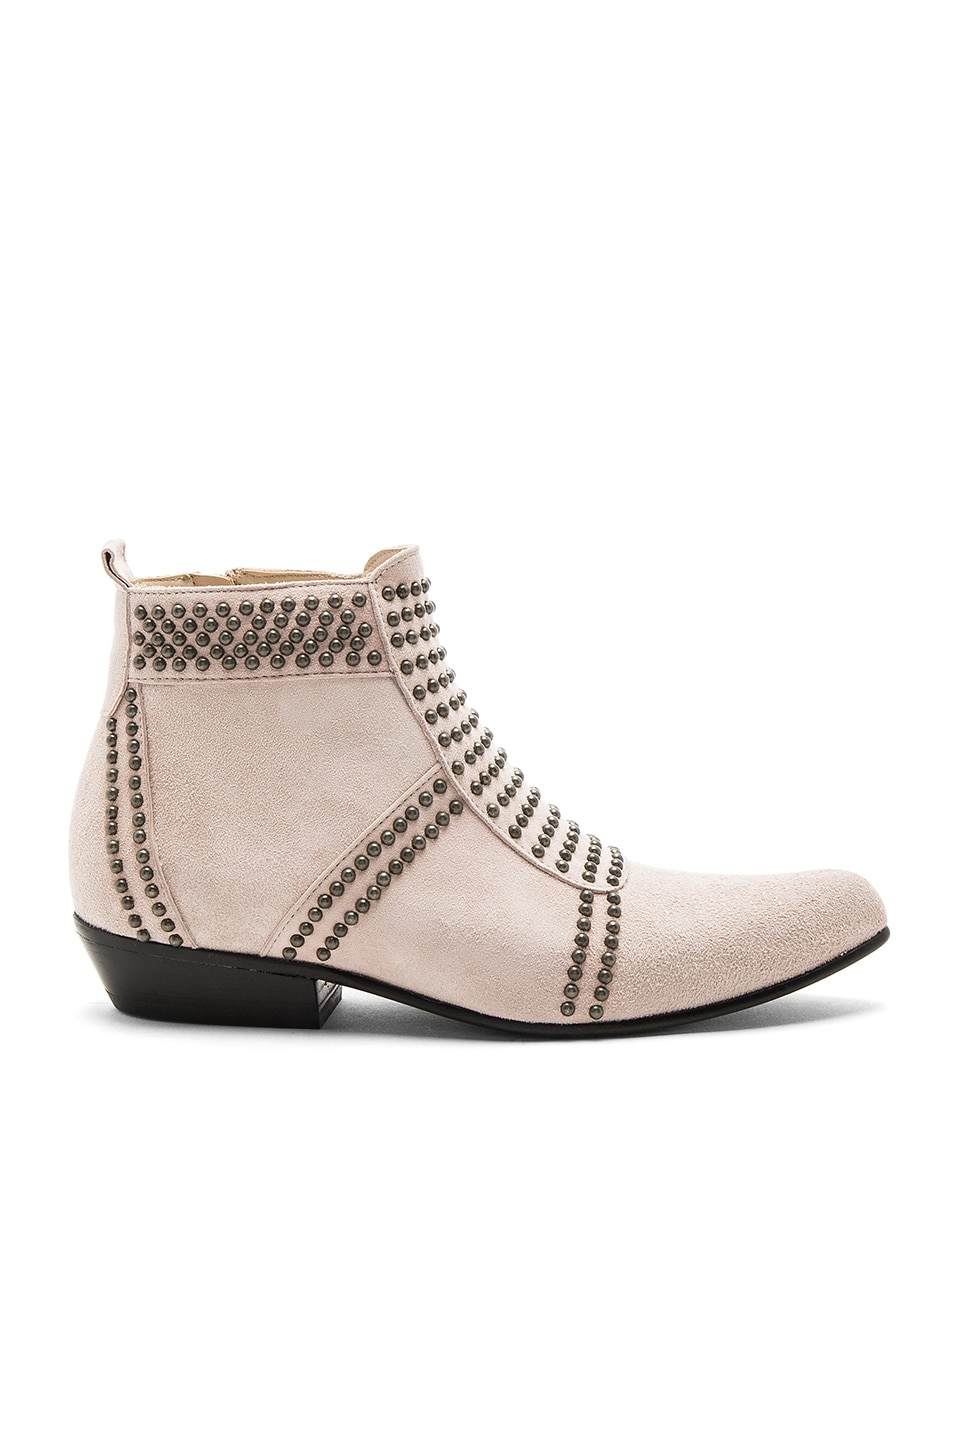 ANINE BING Charlie Booties in Blush